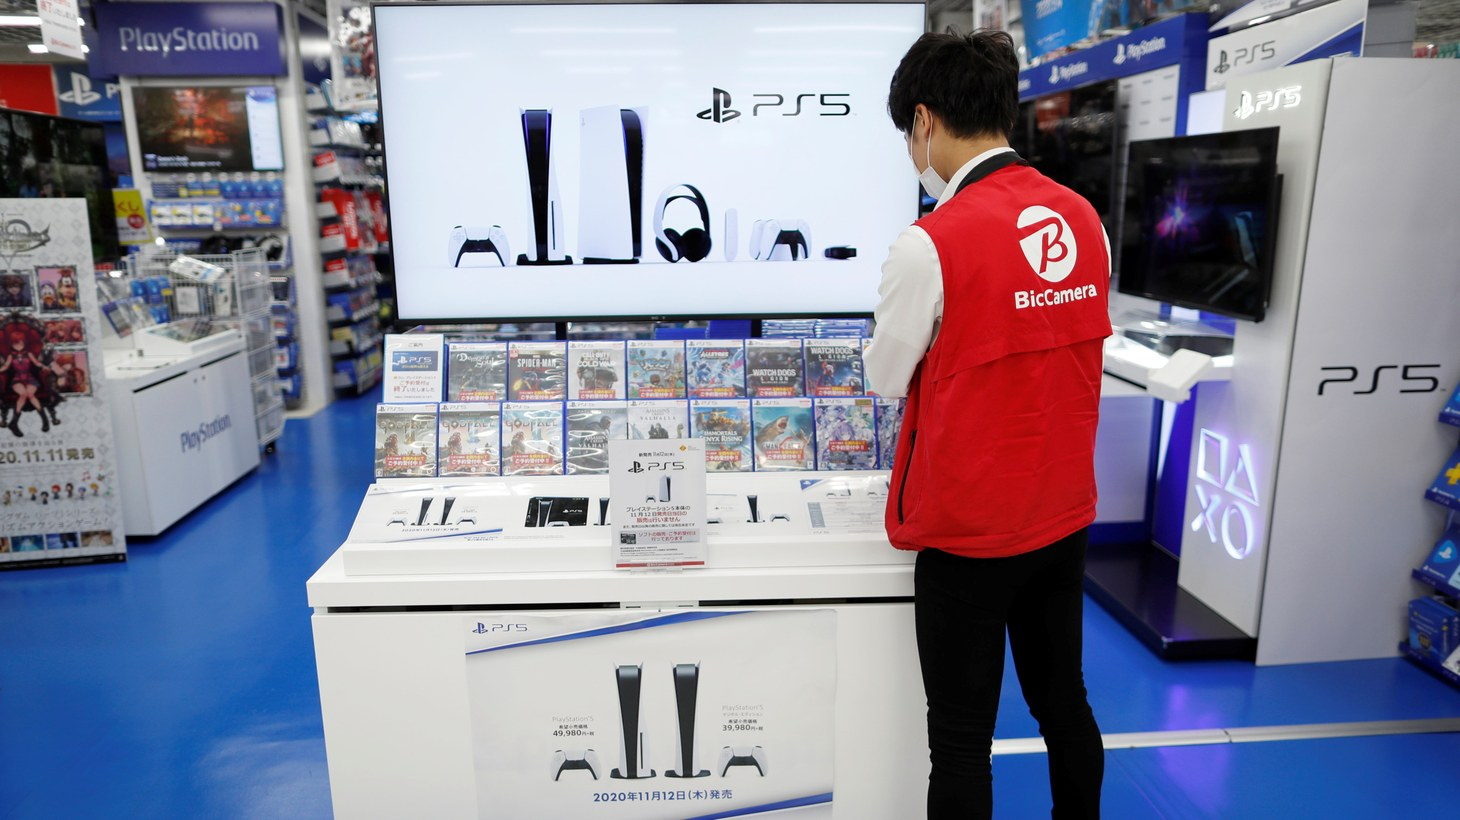 An employee of the consumer electronics retailer chain Bic Camera works at the promotion display for the Sony PlayStation 5 game console and its gaming softwares in Tokyo, Japan, November 10, 2020.